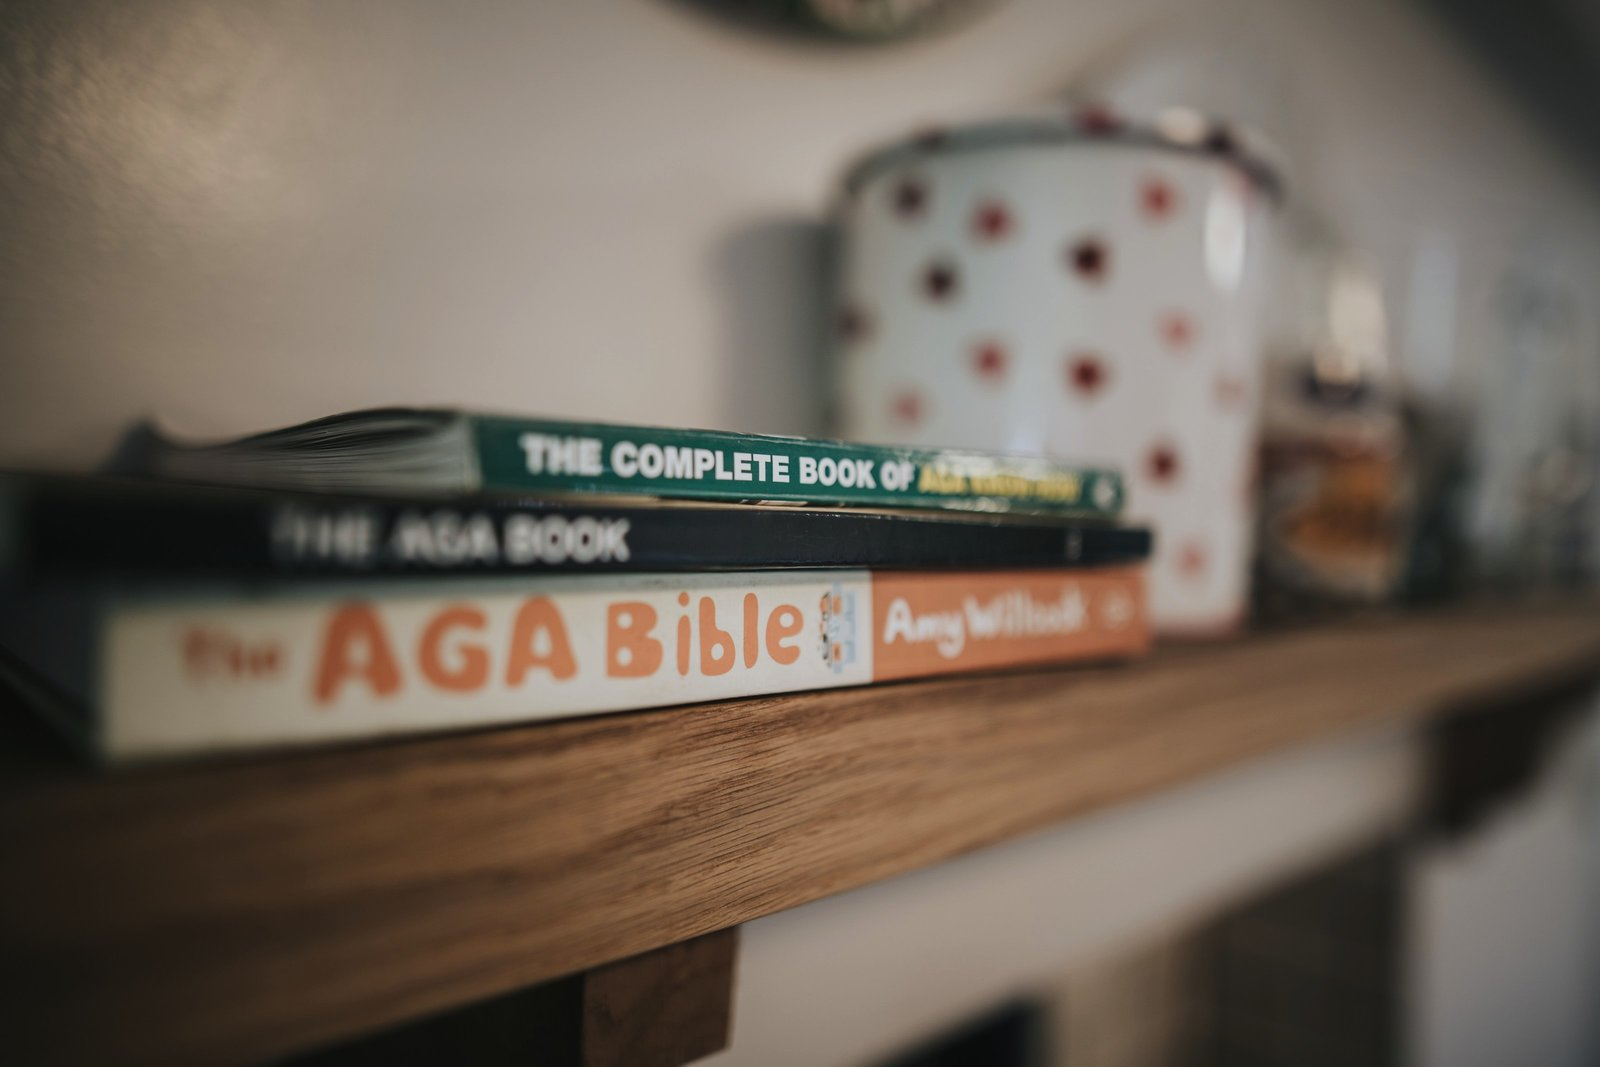 Books on Mantle in Baldry's Cottage Kitchen